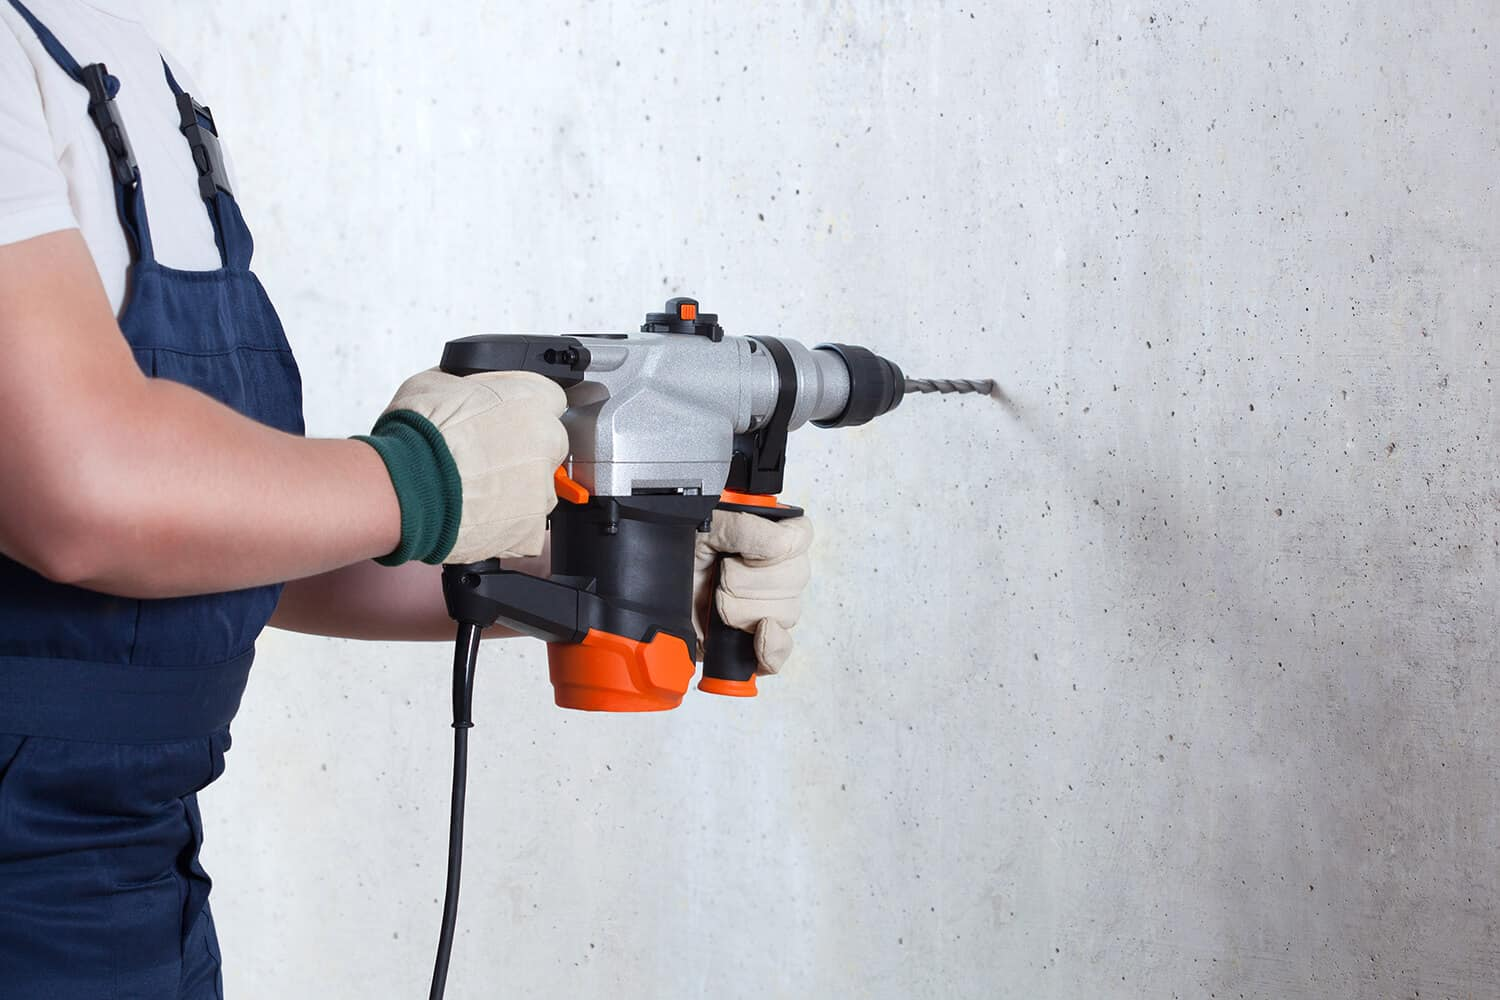 What's the Difference Between a Rotary Hammer vs Hammer Drill